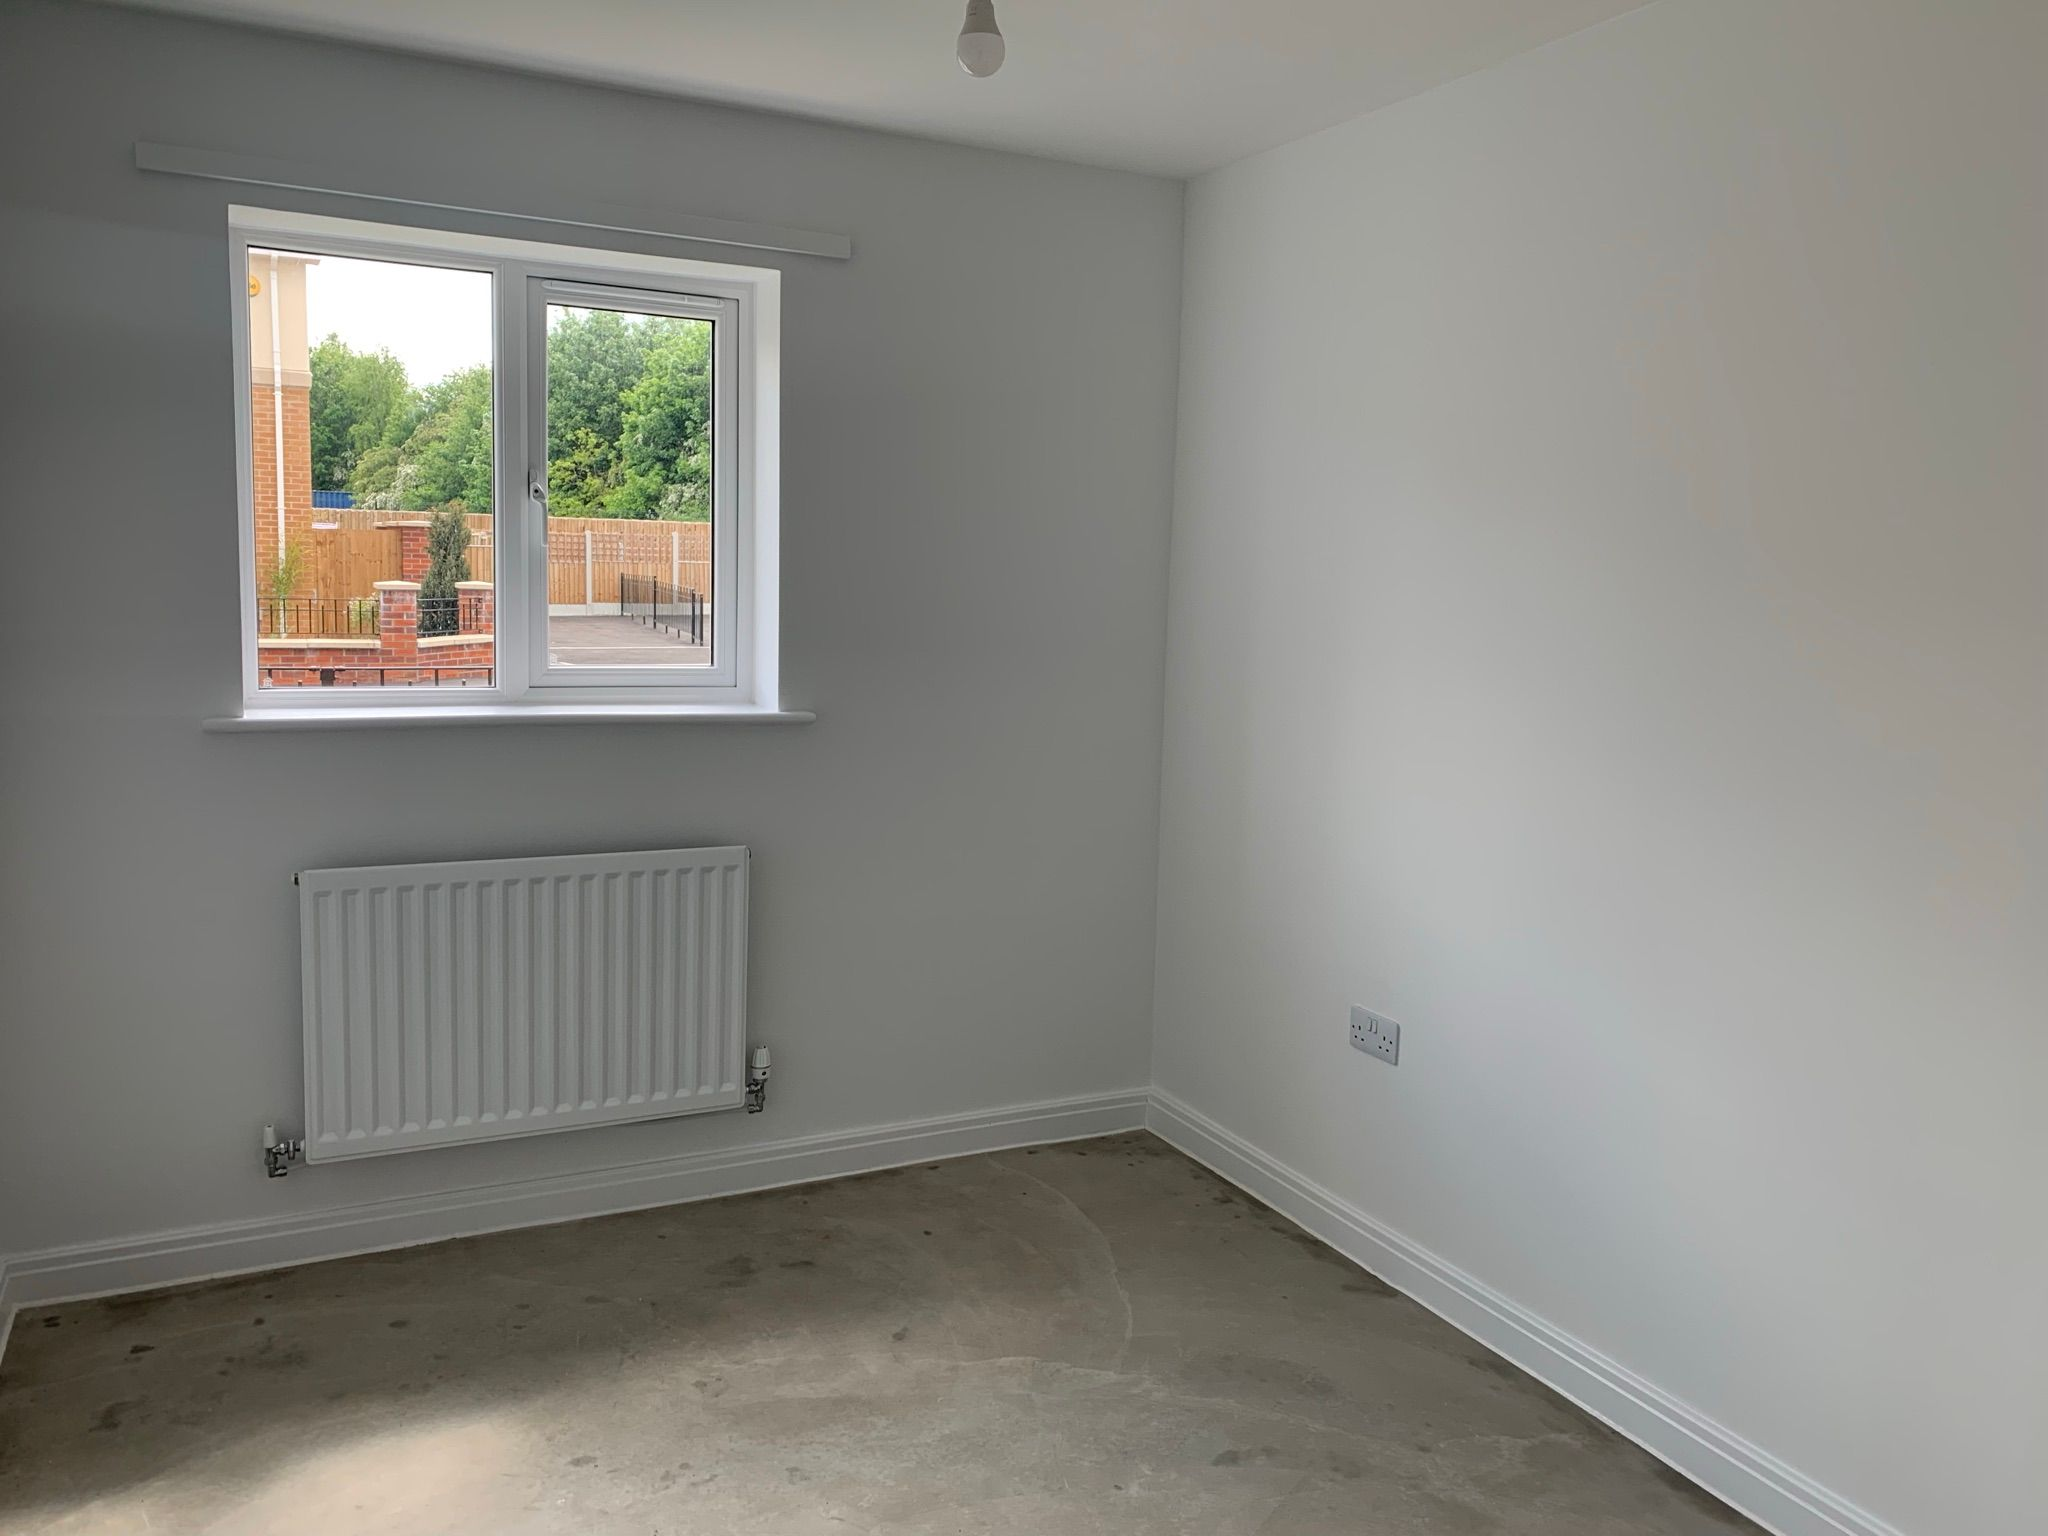 Image 1 of 1 of Second Bedroom, on Accommodation Comprising for .